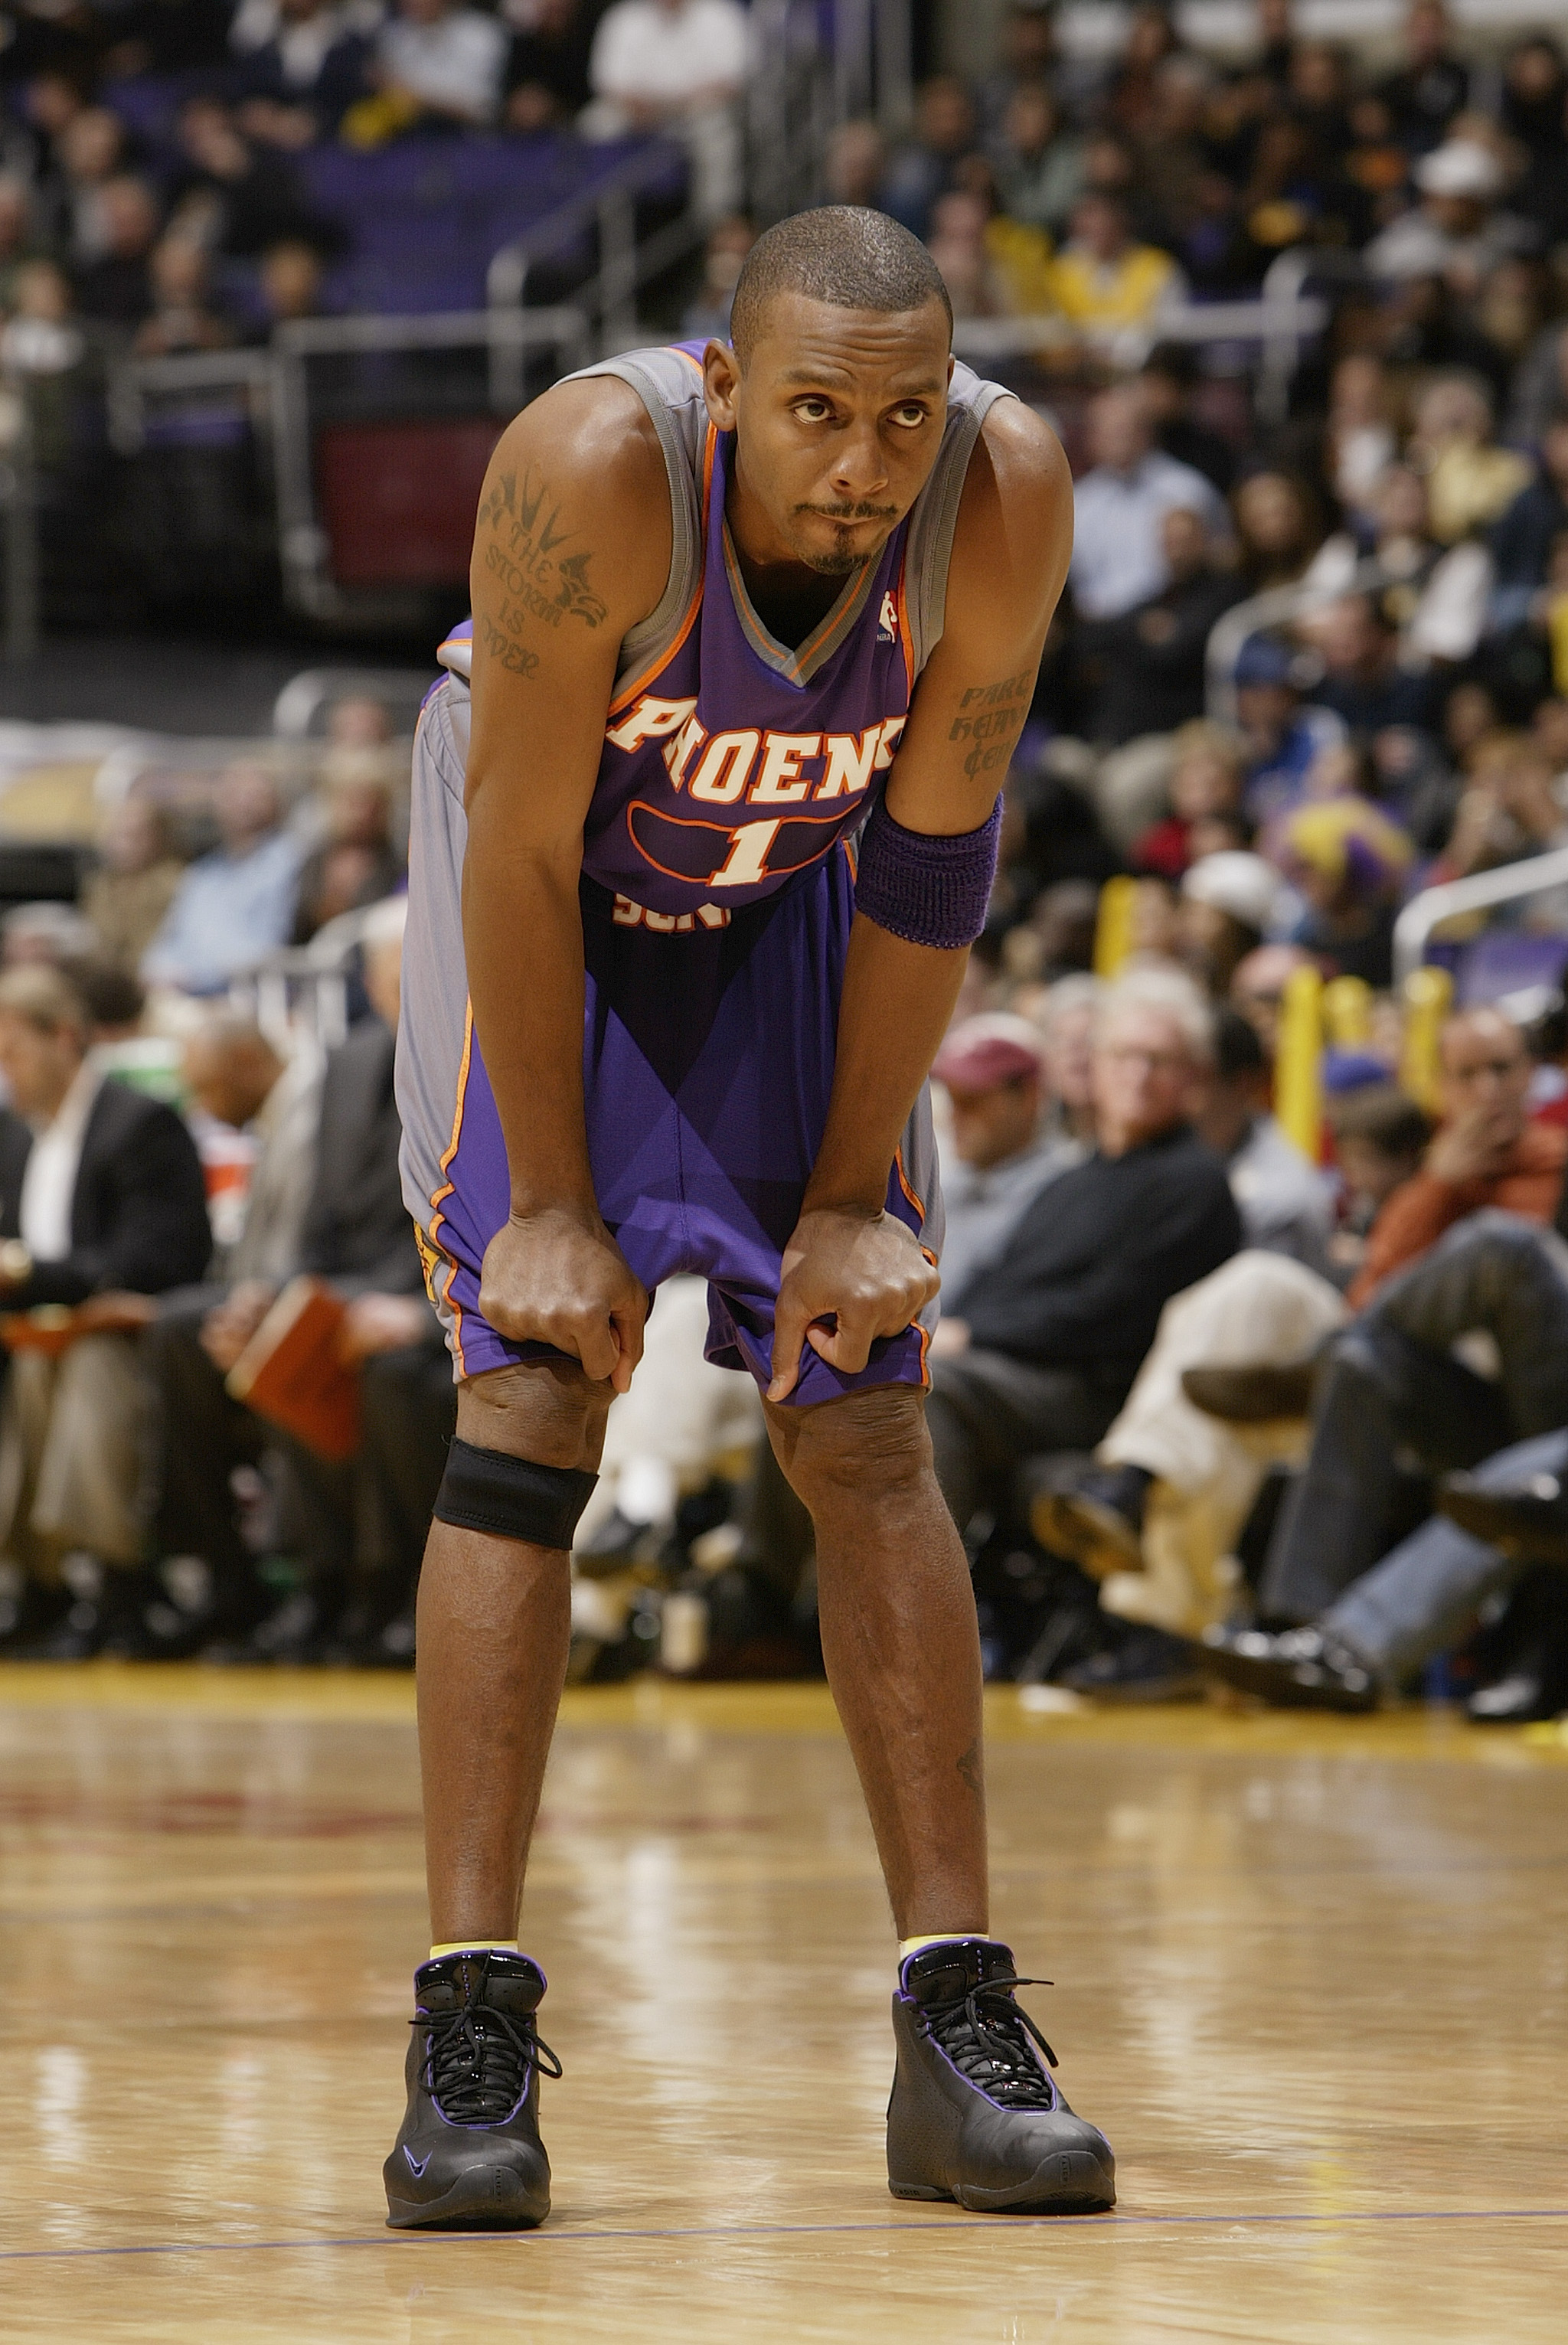 LOS ANGELES - DECEMBER 21:  Anfernee Hardaway #1 of the Phoenix Suns rests during the game against the Los Angeles Lakers at Staples Center on December 21, 2003 in Los Angeles, California.  The Lakers won 107-101.  (Photo by Stephen Dunn/Getty Images)